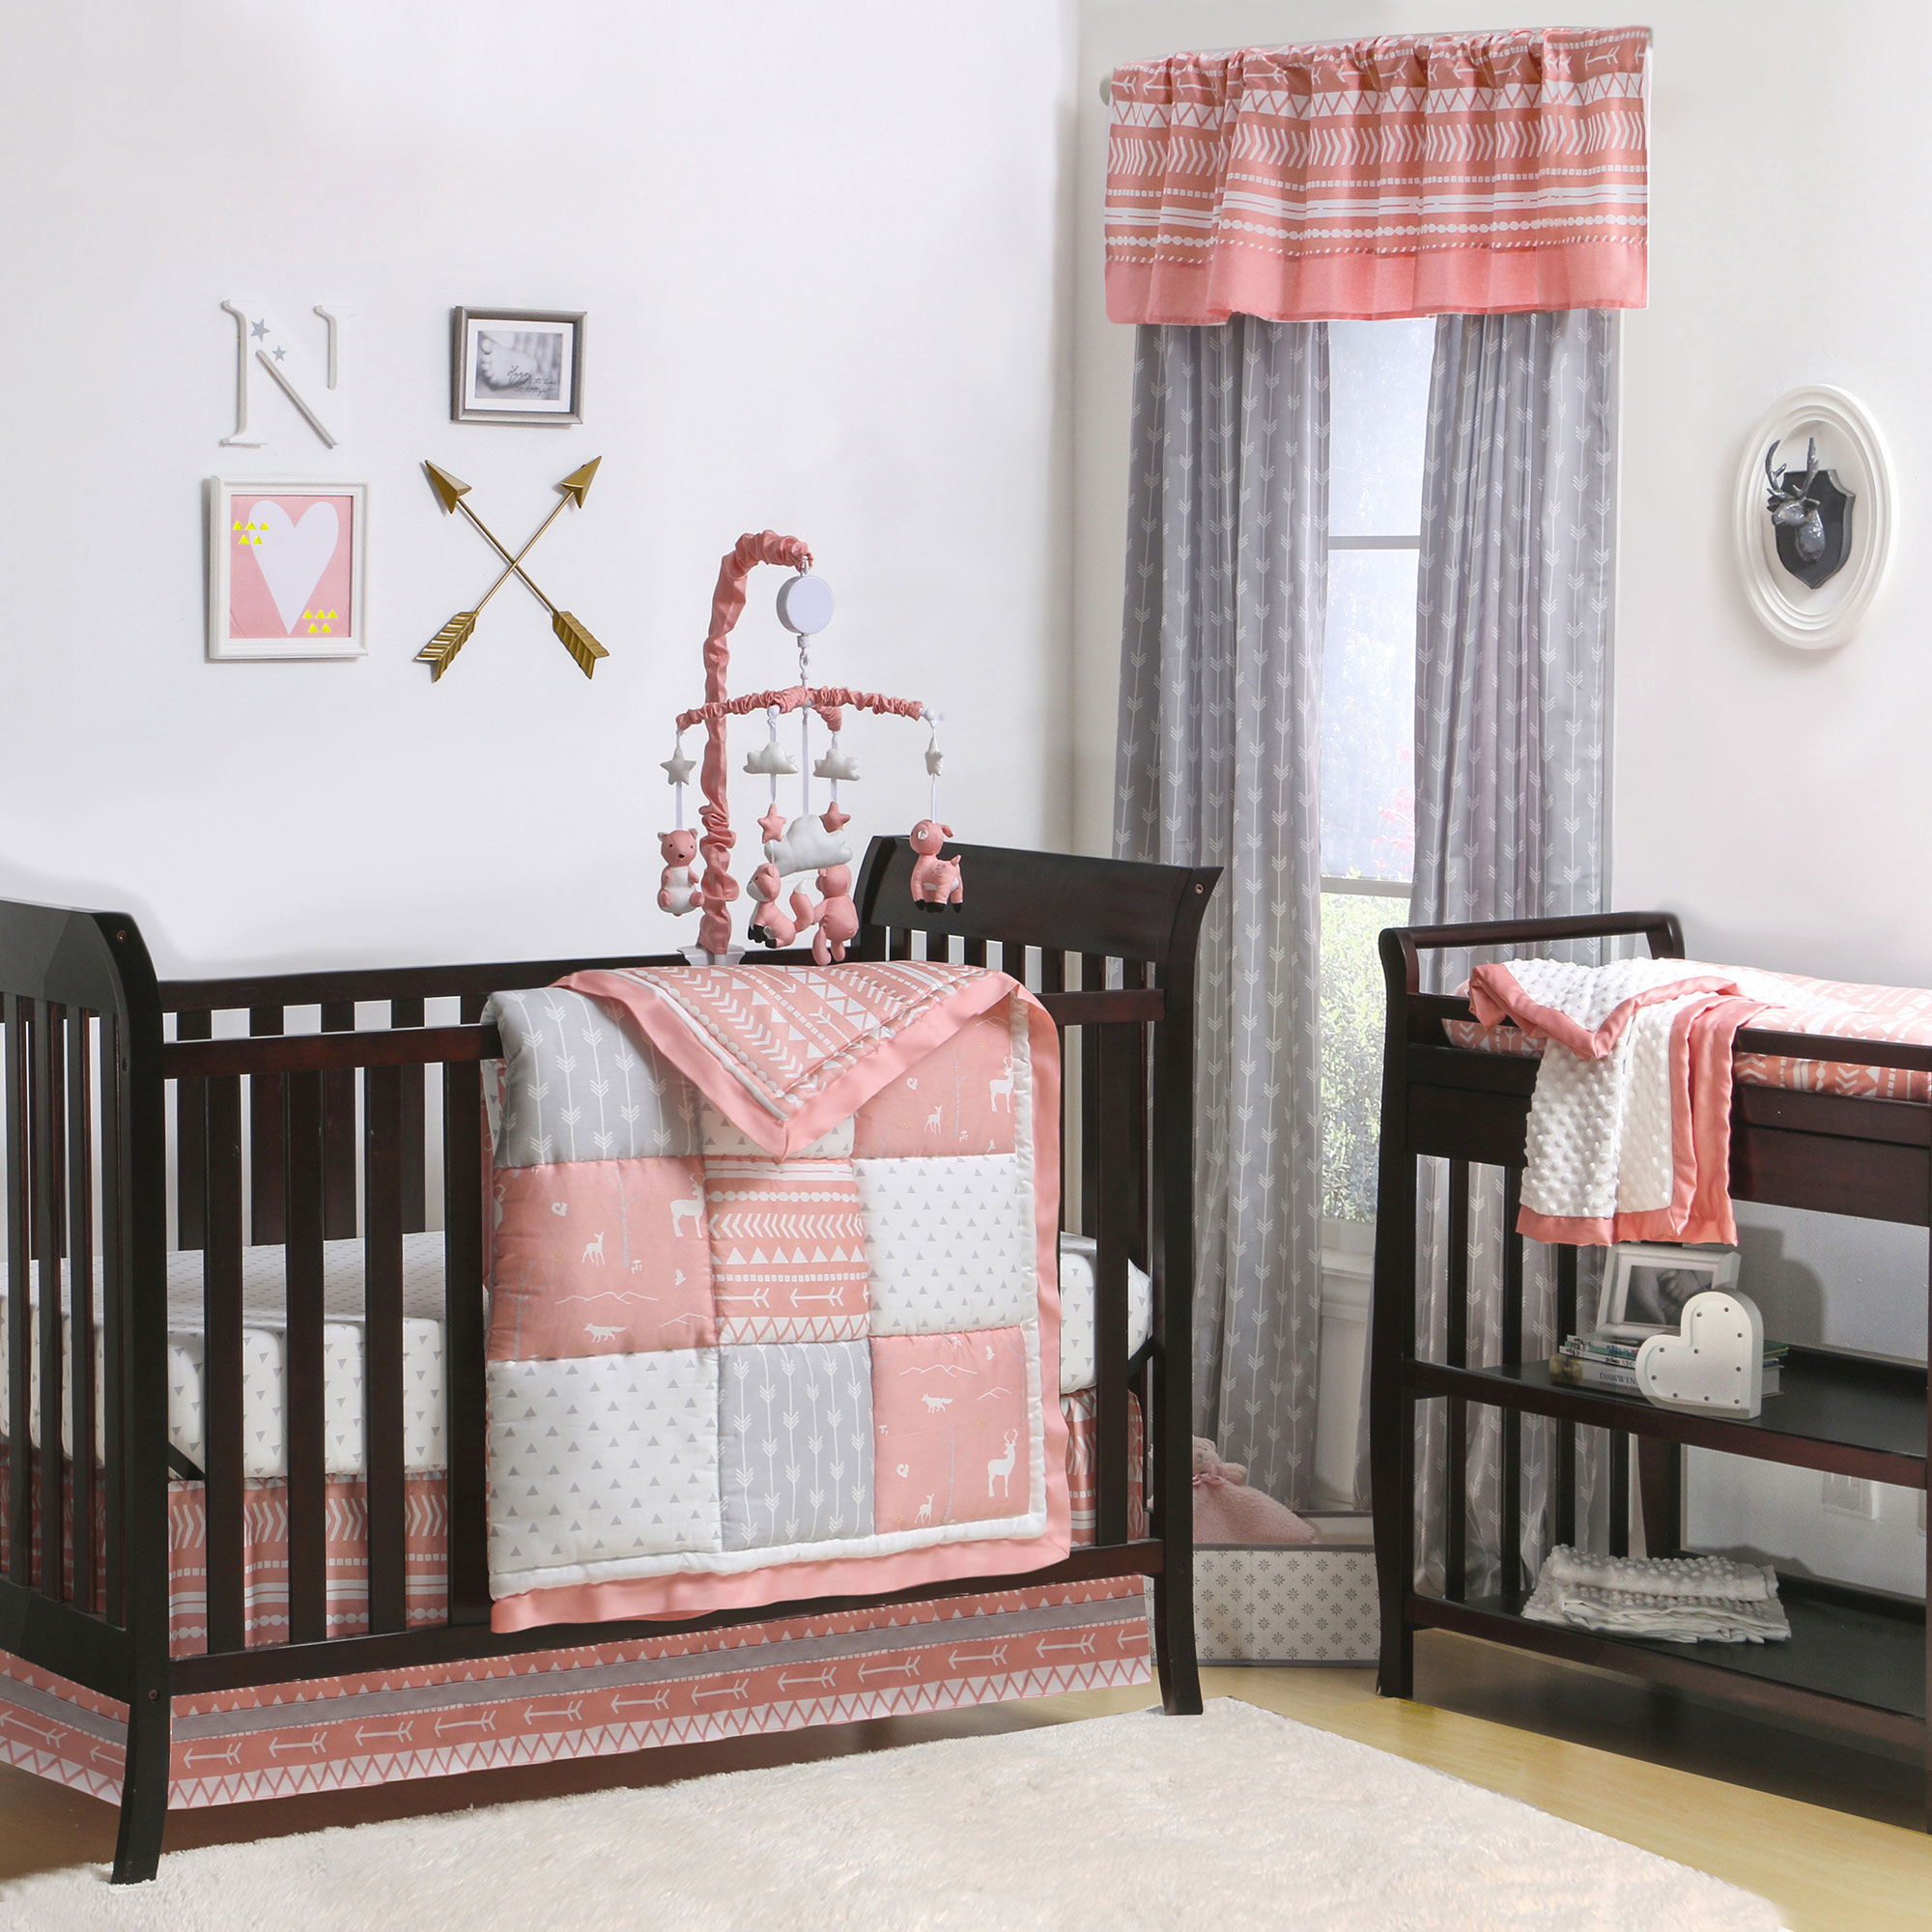 Bad Set For Baby Woodland Pixie Coral And Grey Baby Girl Crib Bedding 11 Piece Sleep Essentials Set